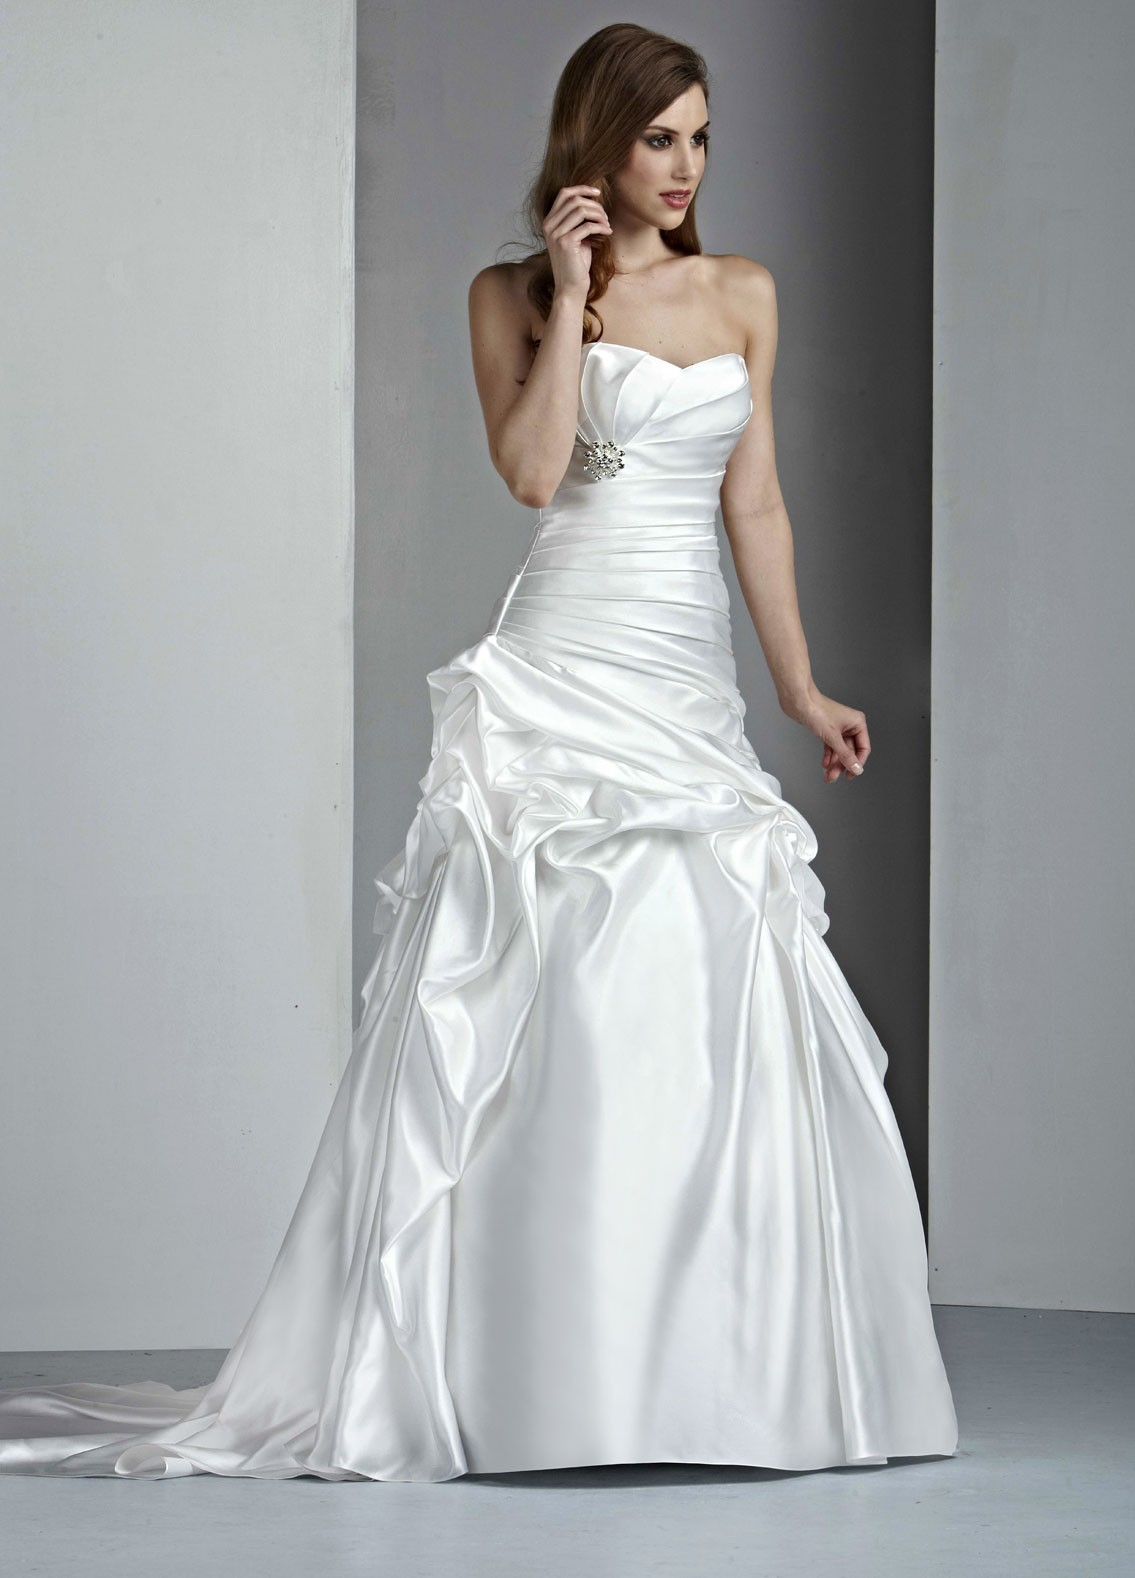 Used Wedding Dresses Under 100 Jewellery : March at ? in wonderful satin wedding dresses